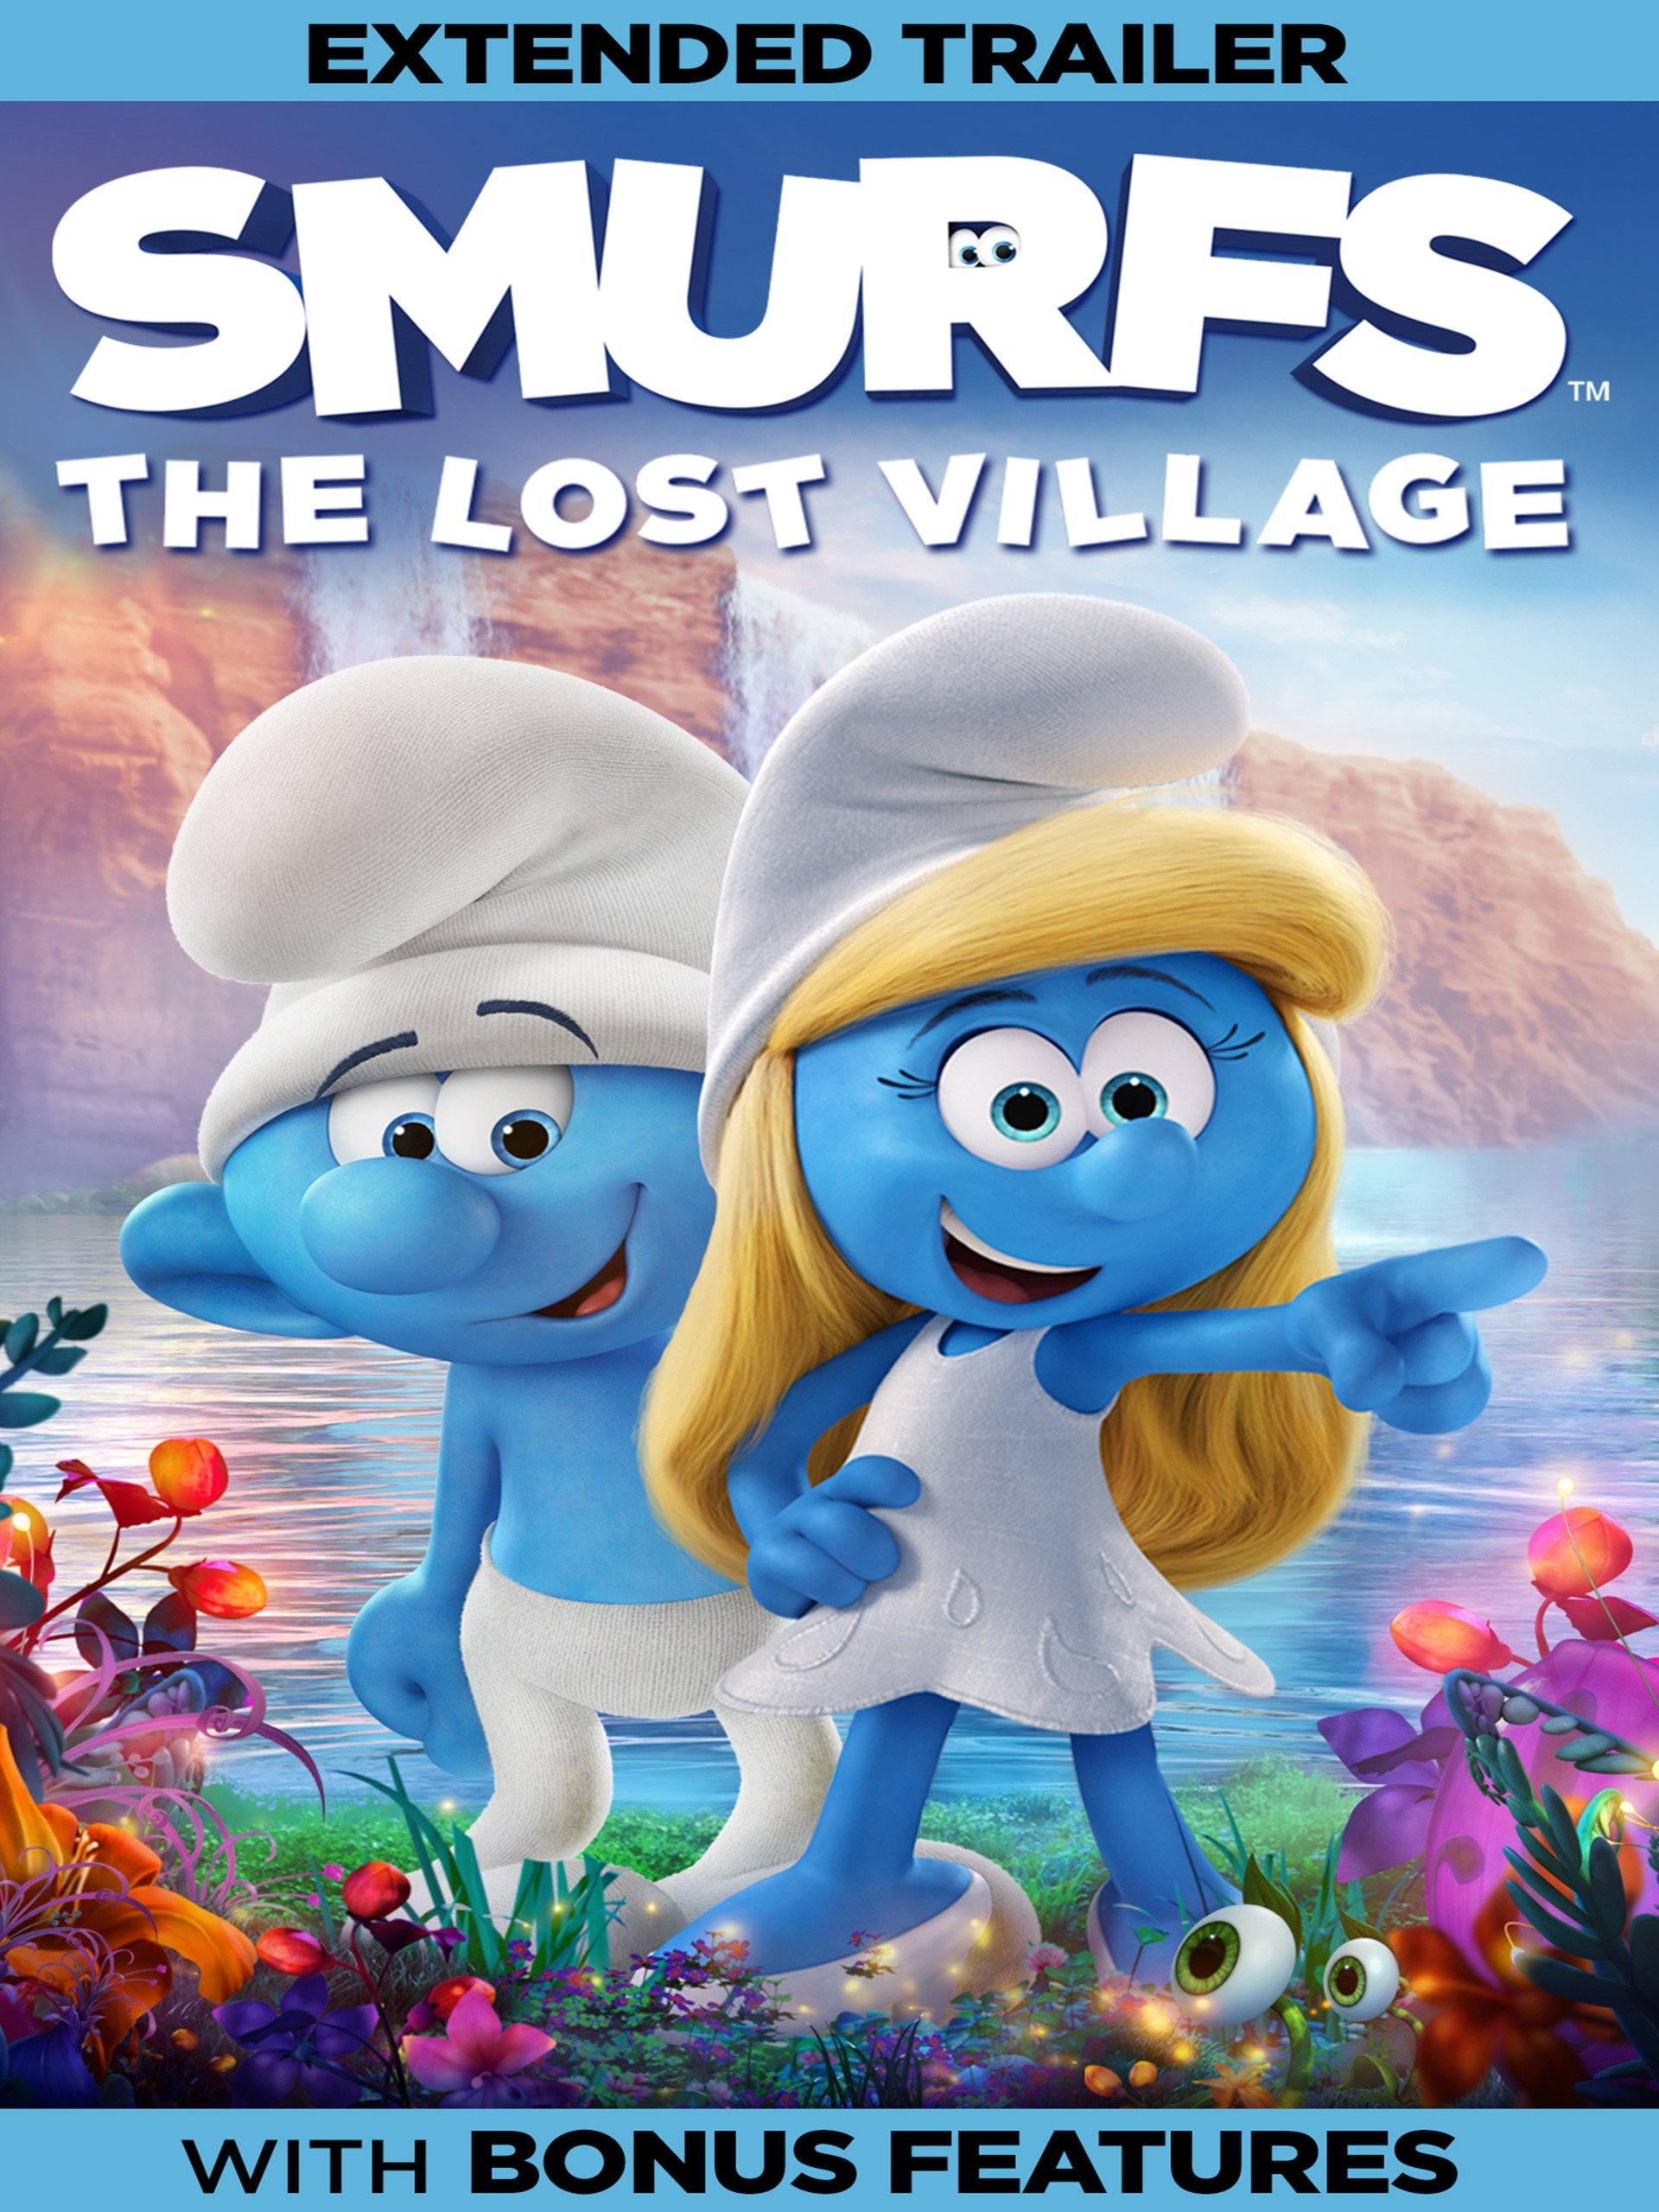 smurfs the lost village english movie eng sub free download ahmad abdul qodir powered by doodlekit doodlekit